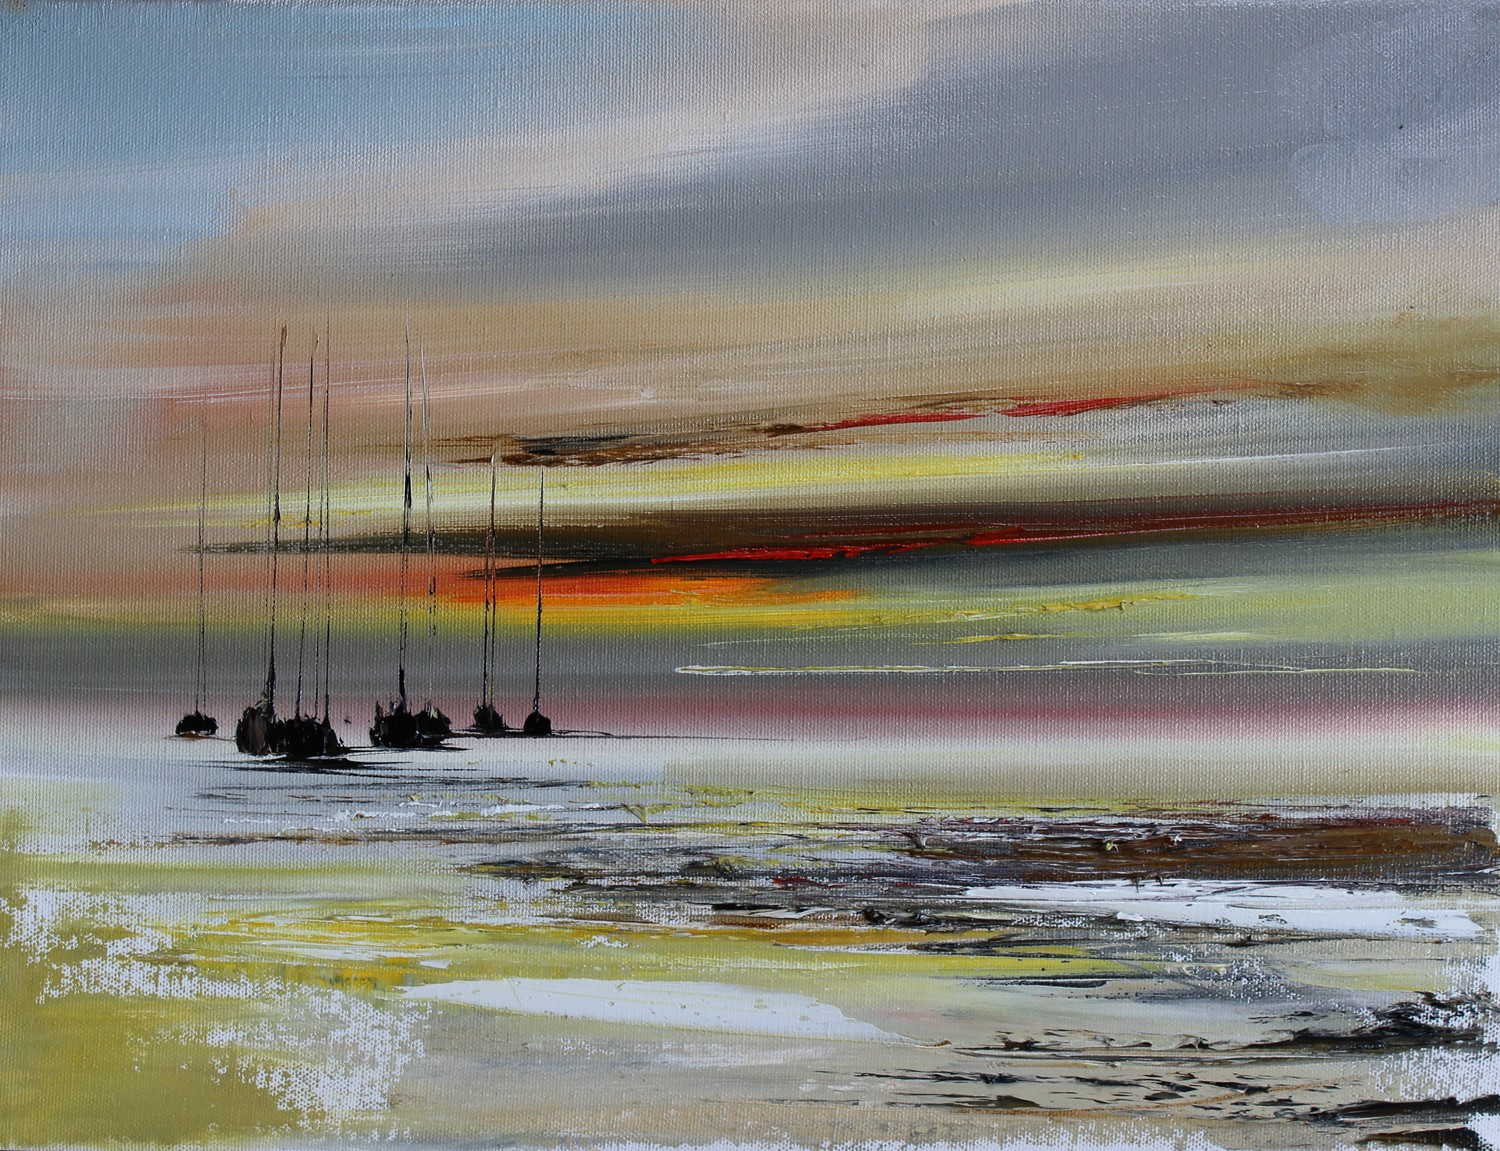 'Reflections from the shore' by artist Rosanne Barr